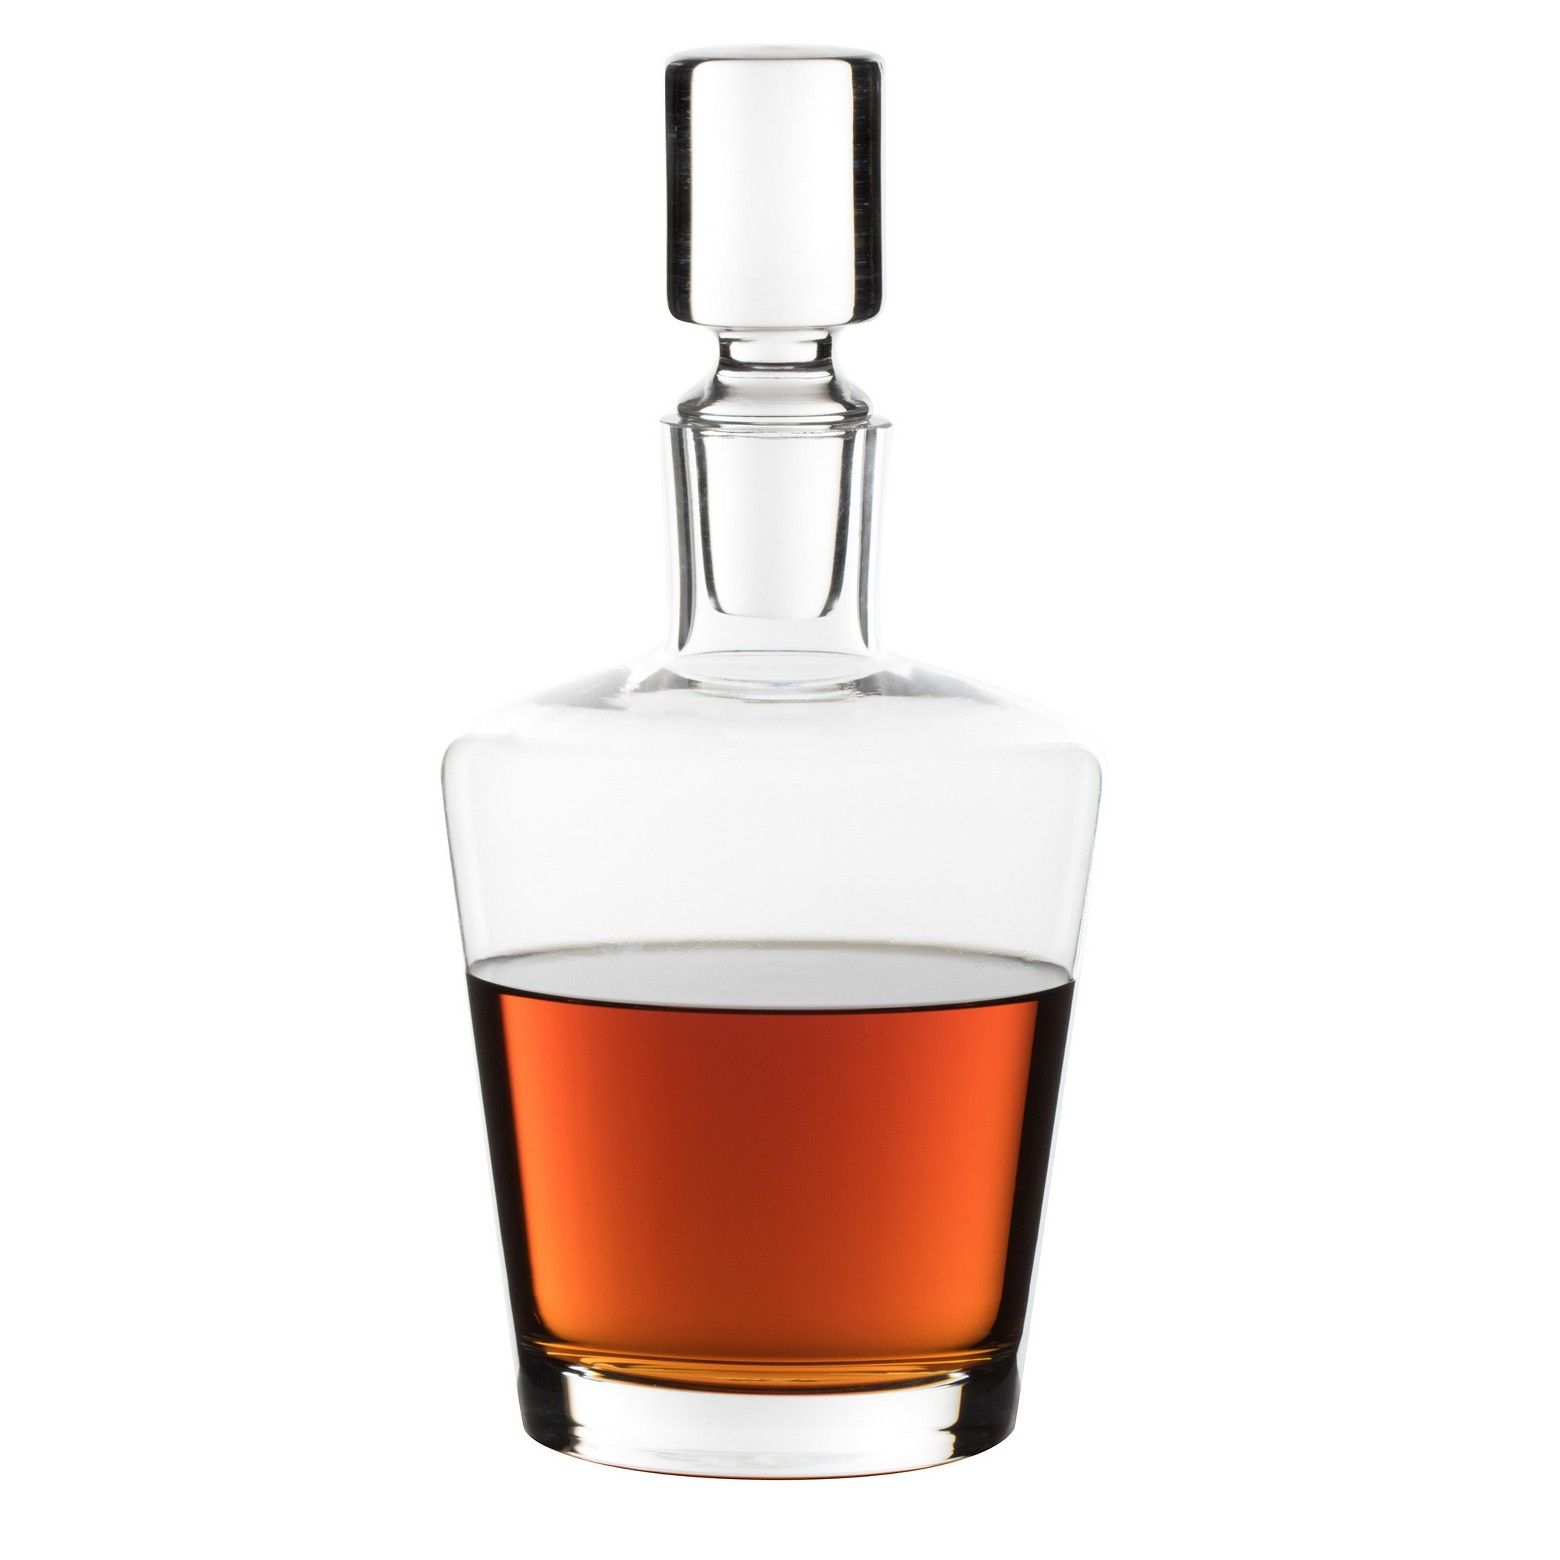 The Libbey Craft Spirits Decanter With Stopper Is Substantial Attractive And Bespoke It 39 S Svelte Enough To Engage With The Rest Of Your Car Regalos Medan